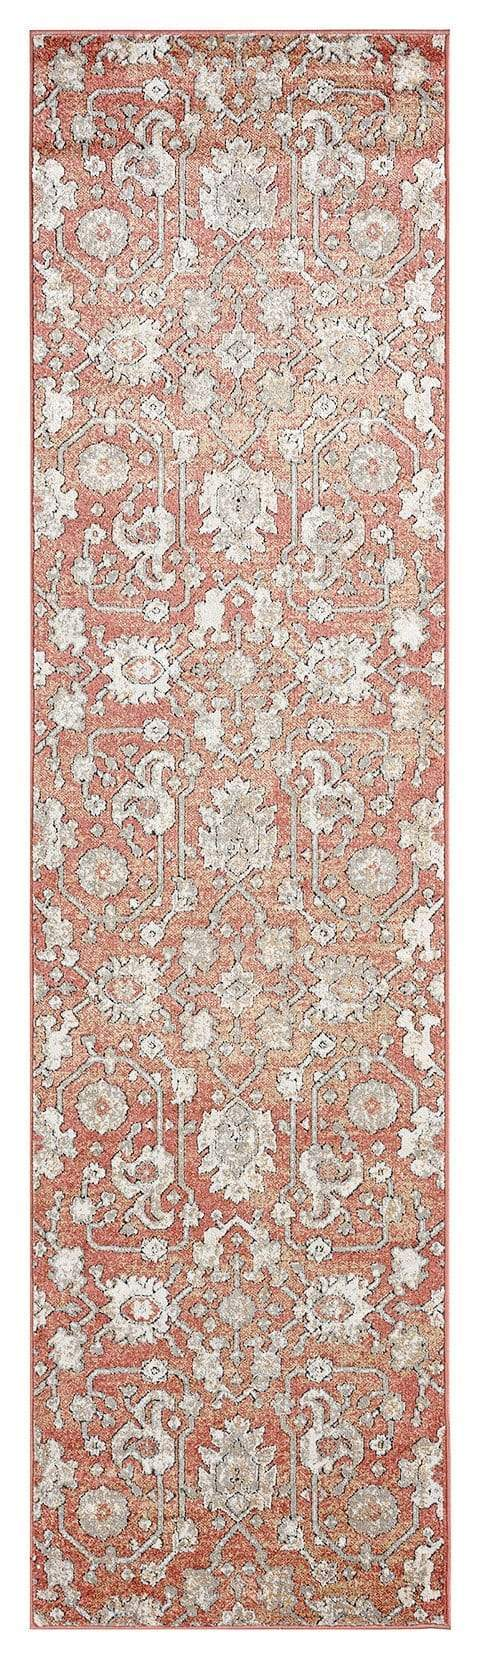 Gracie Peach Terracotta Transitional Floral Motif Runner Rug